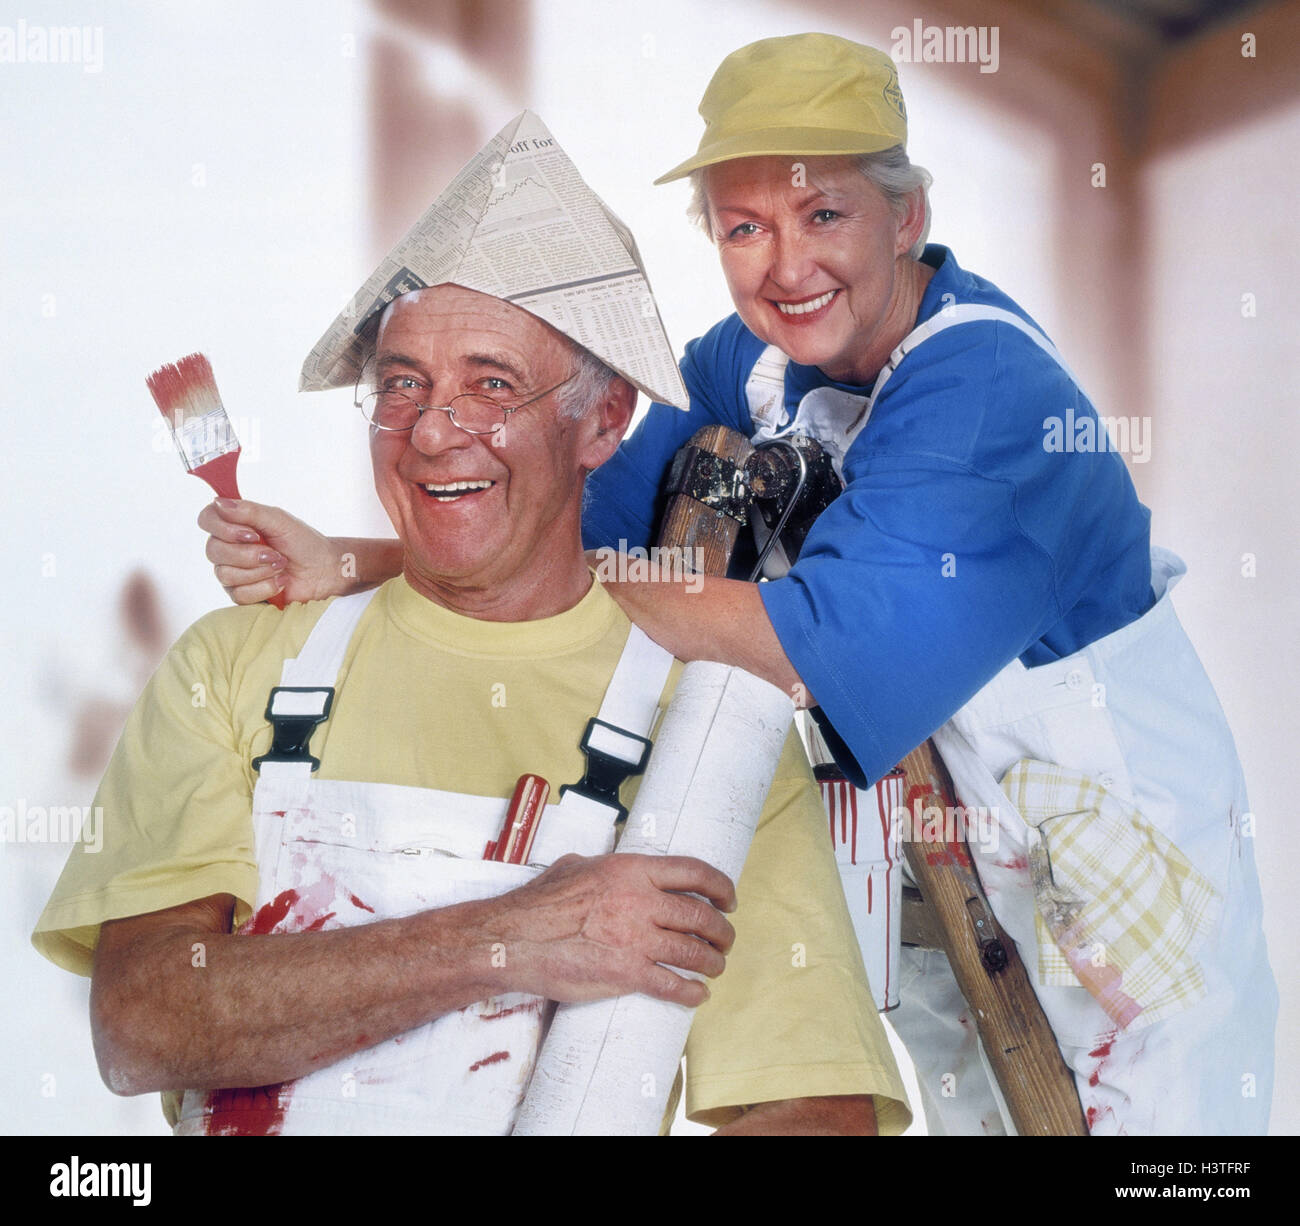 Do it yourself senior couple renovation colour conductor stand do it yourself senior couple renovation colour conductor stand laugh happy paint senior studio inside man woman old renovate wallpaper solutioingenieria Gallery